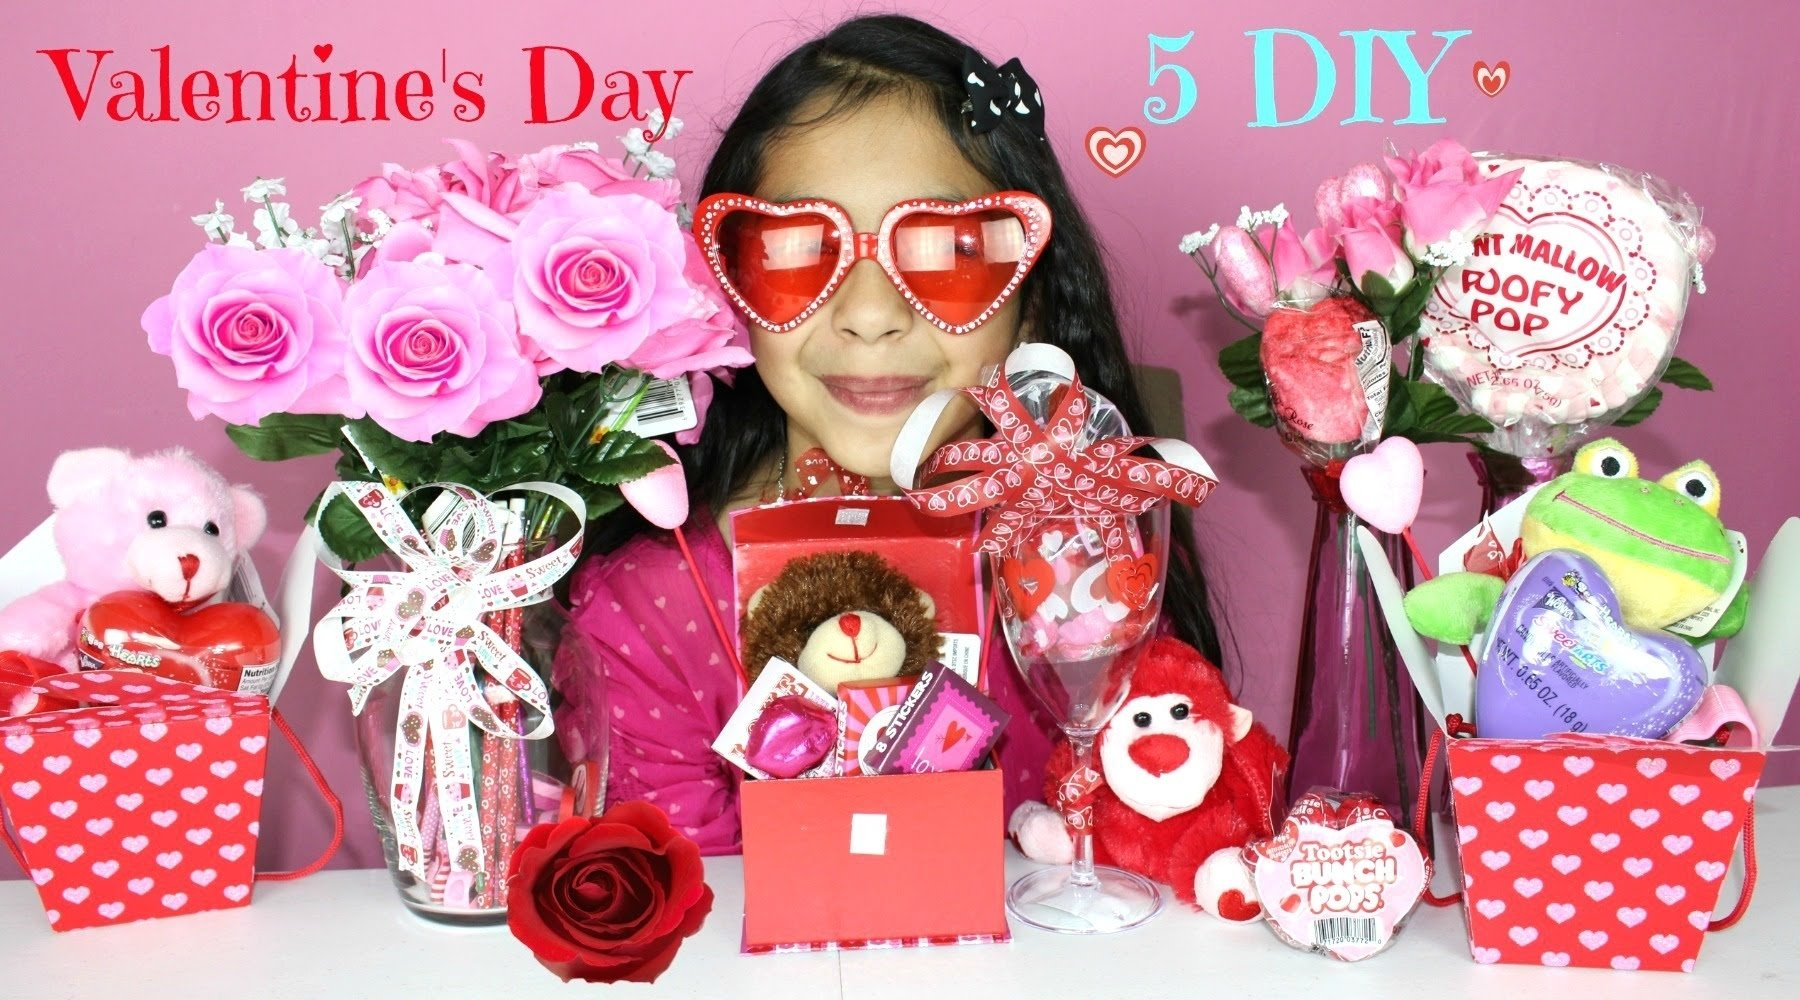 10 Great Valentines Gift Ideas For Mom 5 valentines day diy gift ideas youtube 2021